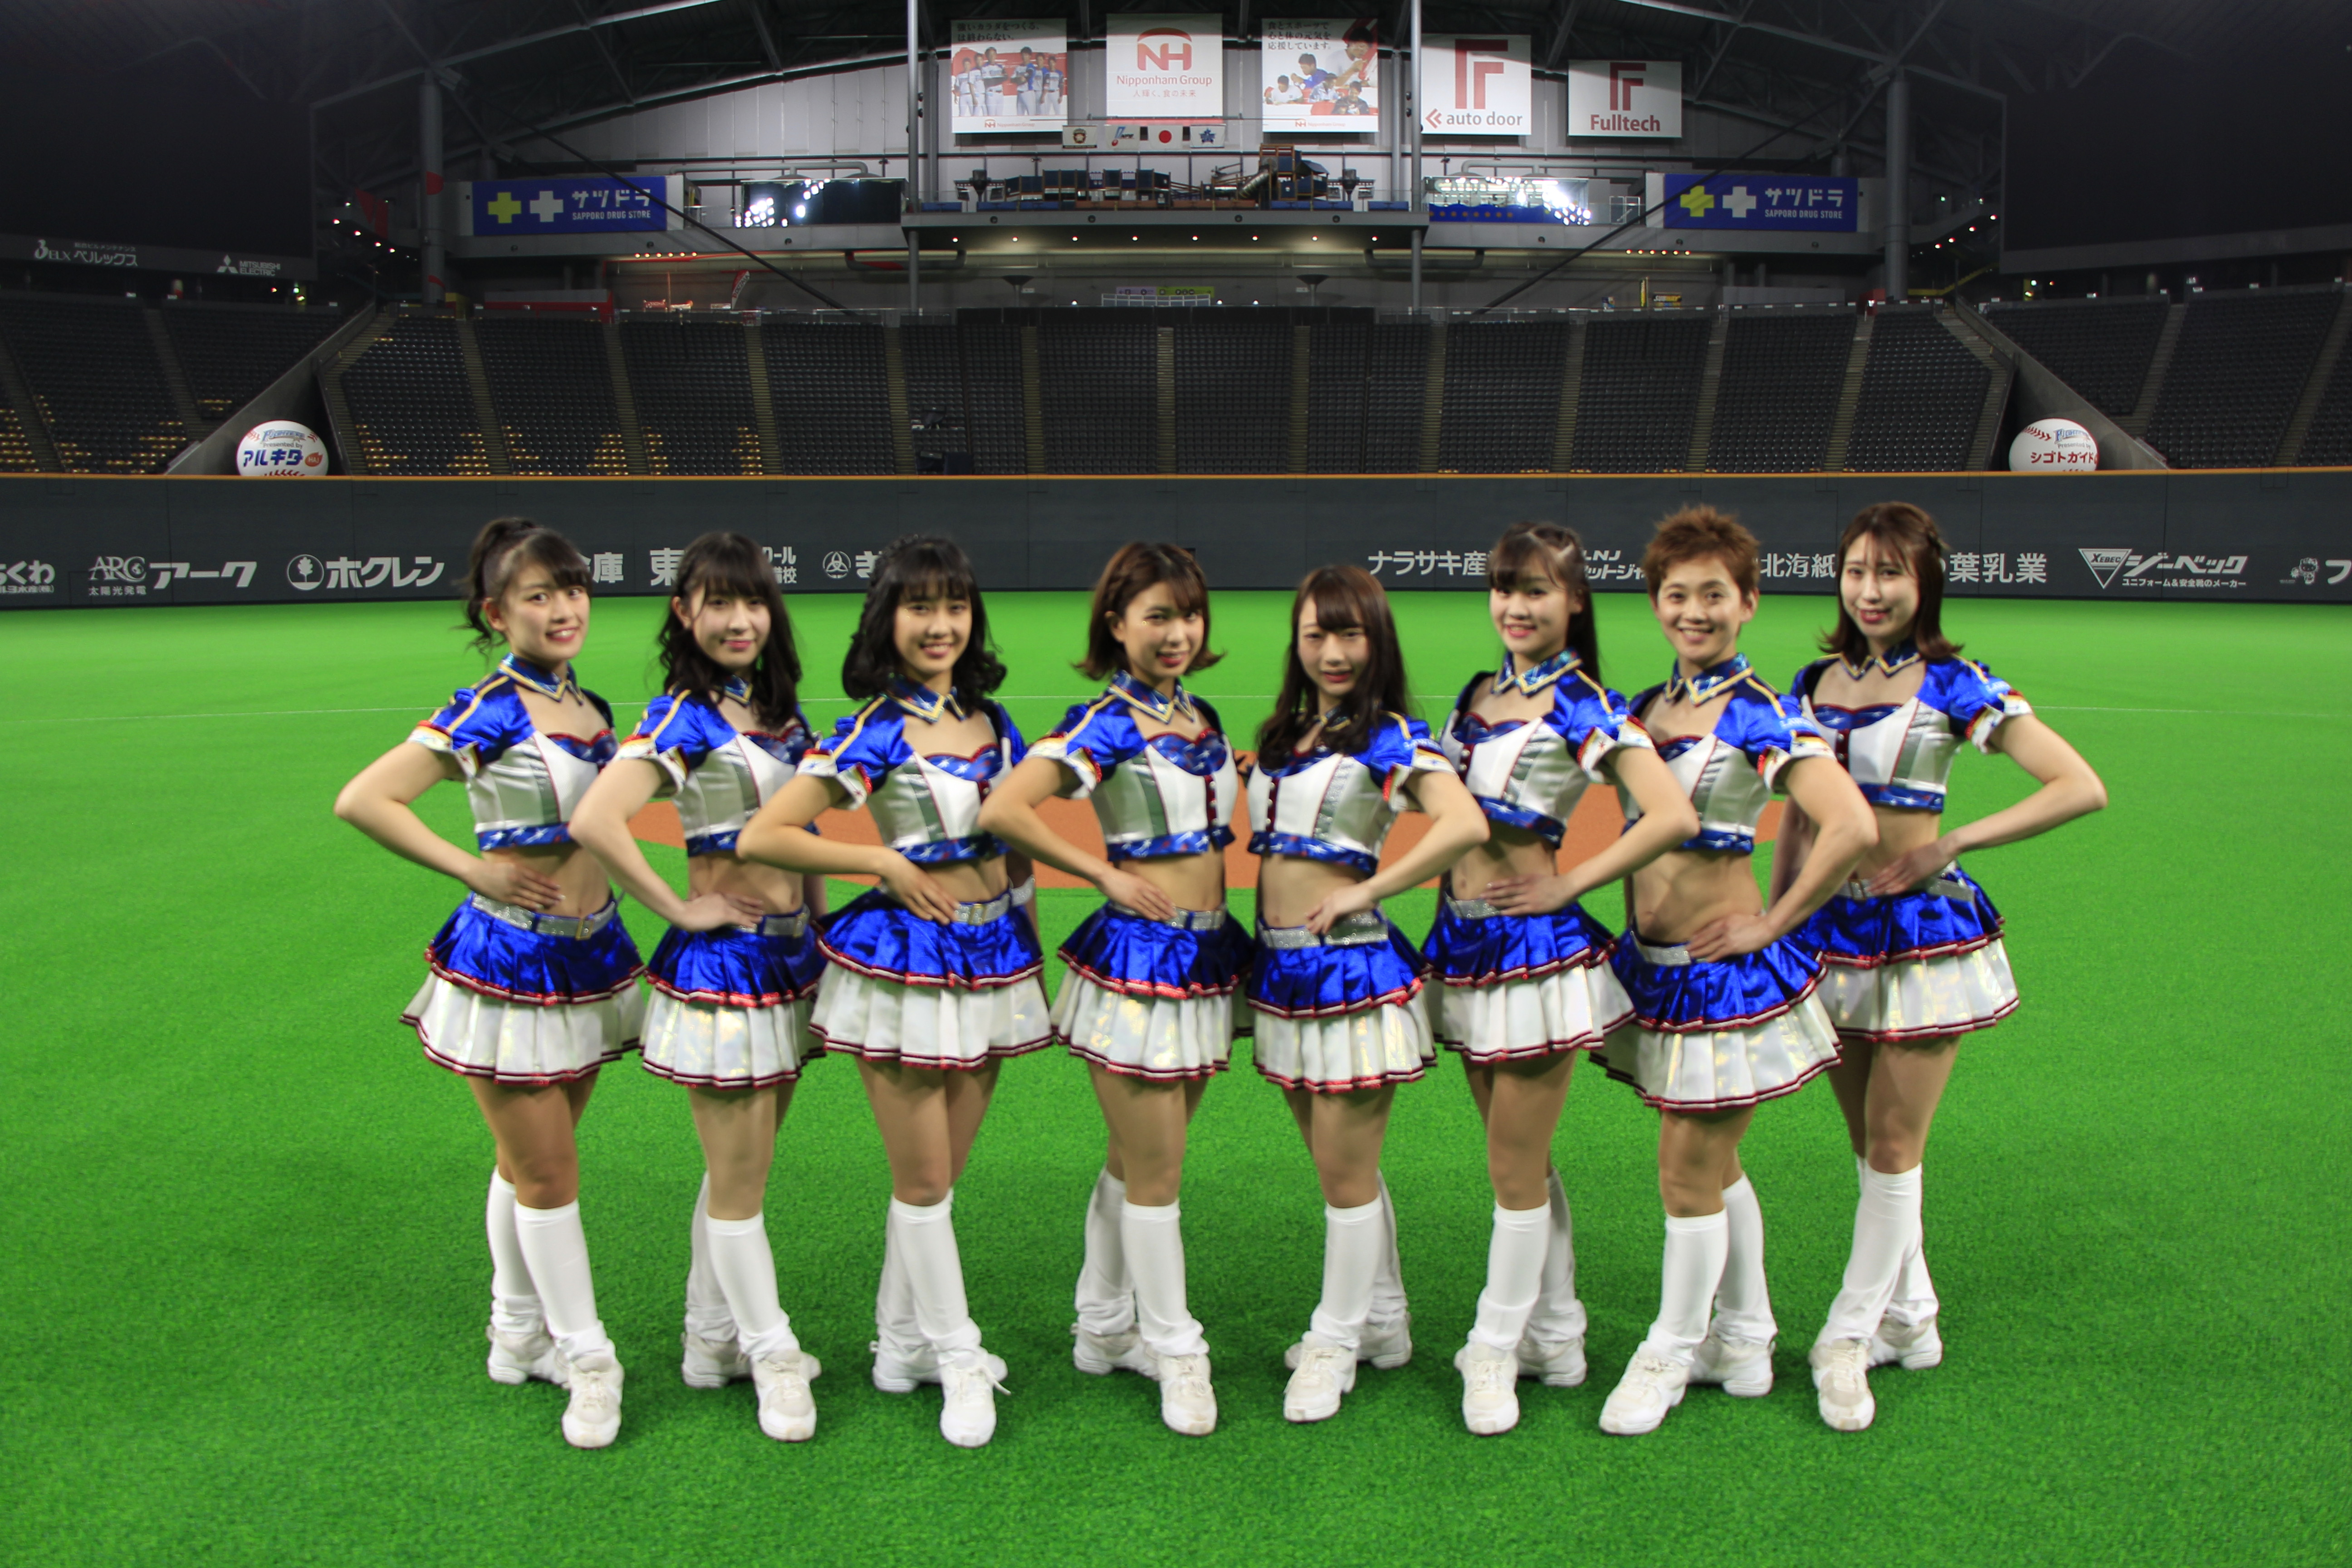 OSARECOMPANY designs and produces the costume for the Fighter Girls〜OSARECOMPANY hypes up the Hokkaido Nippon-Ham Fighters 2019 Season with new costumes!!〜